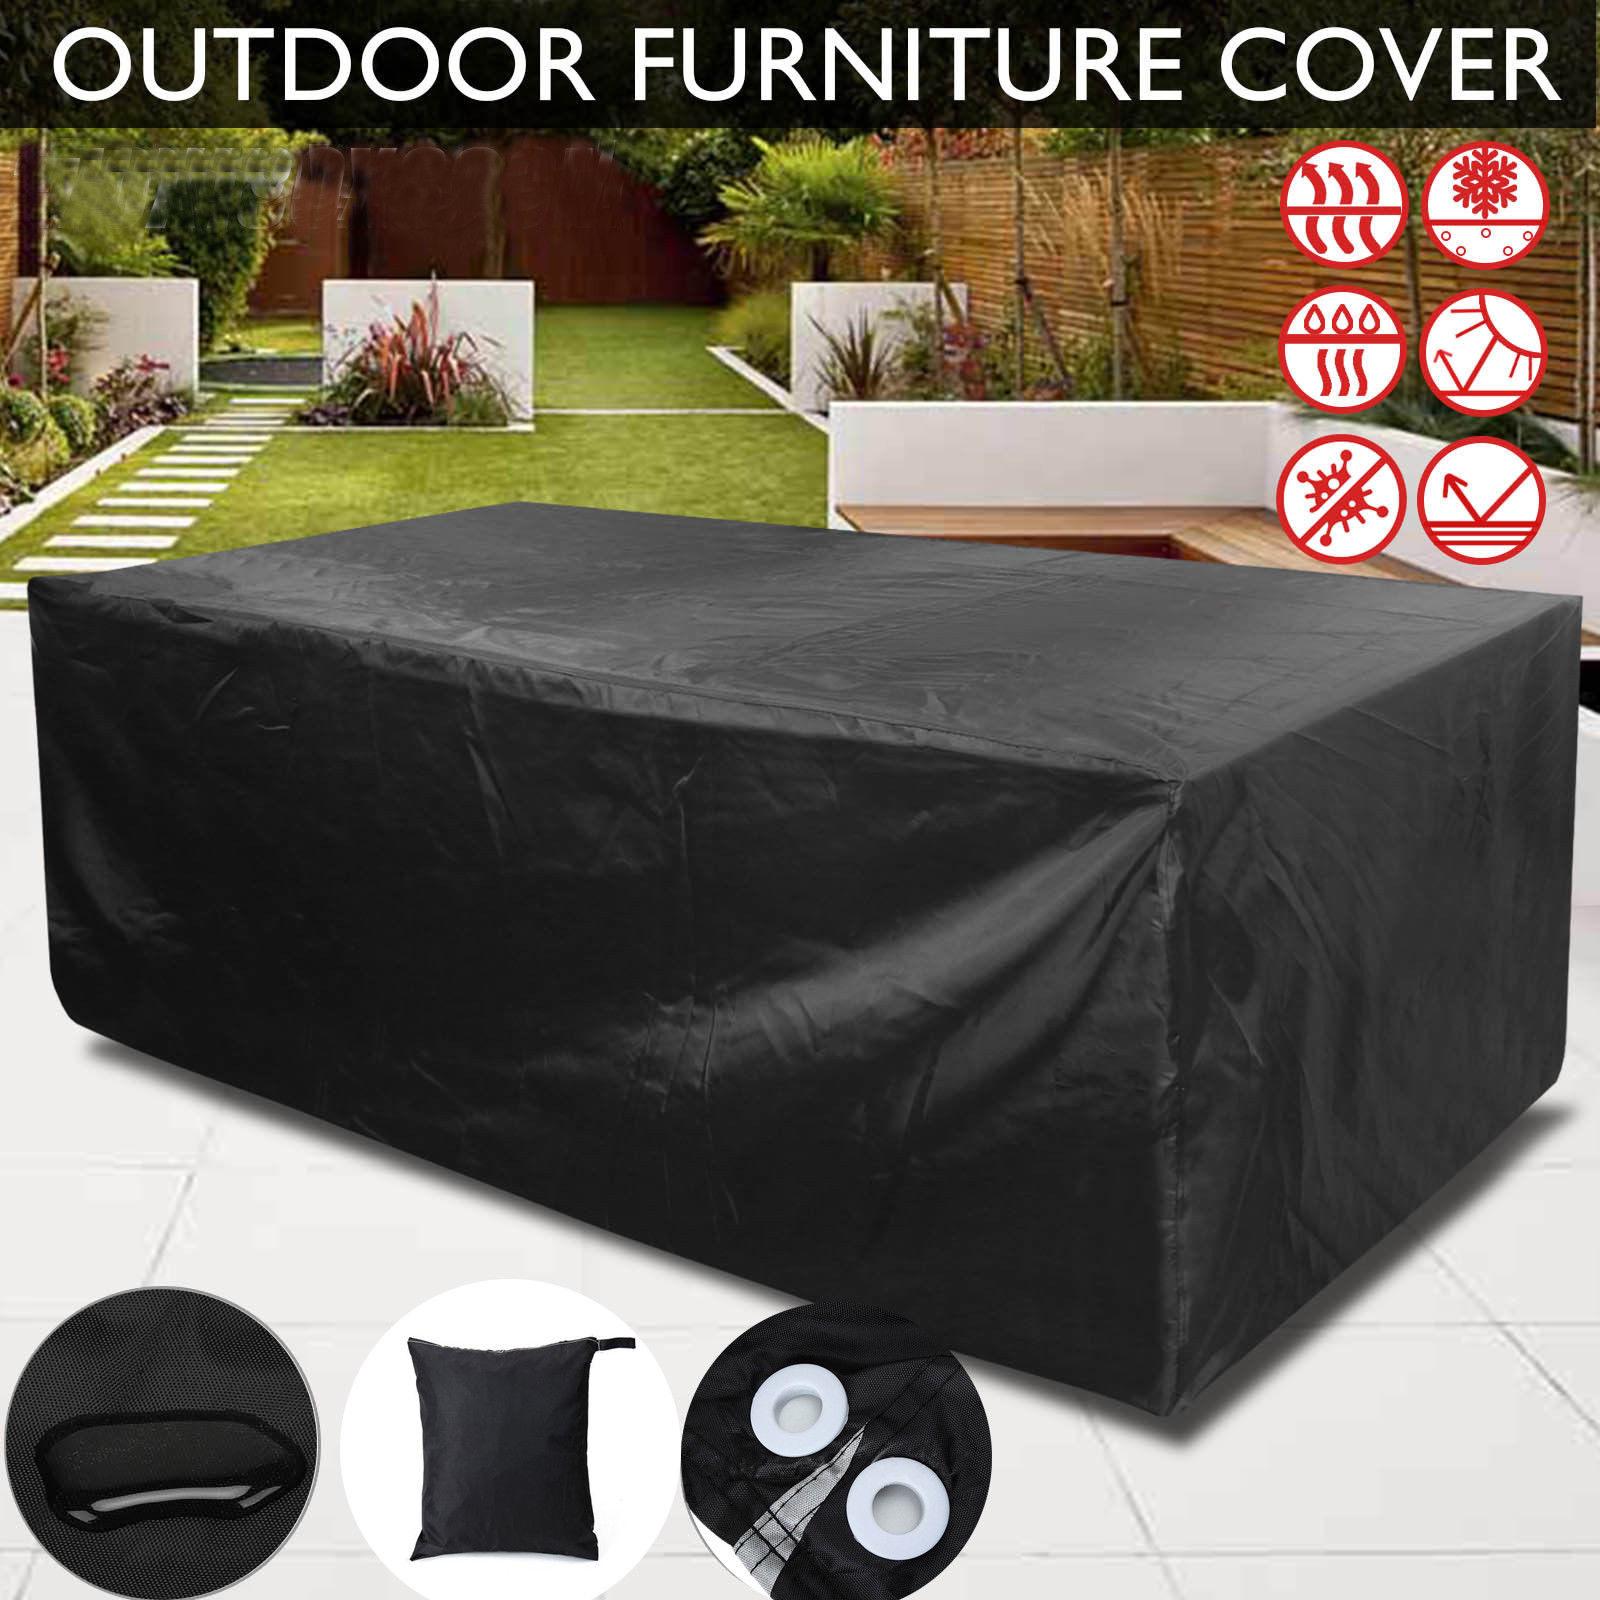 Buy outdoor waterproof furniture cover and free shipping on